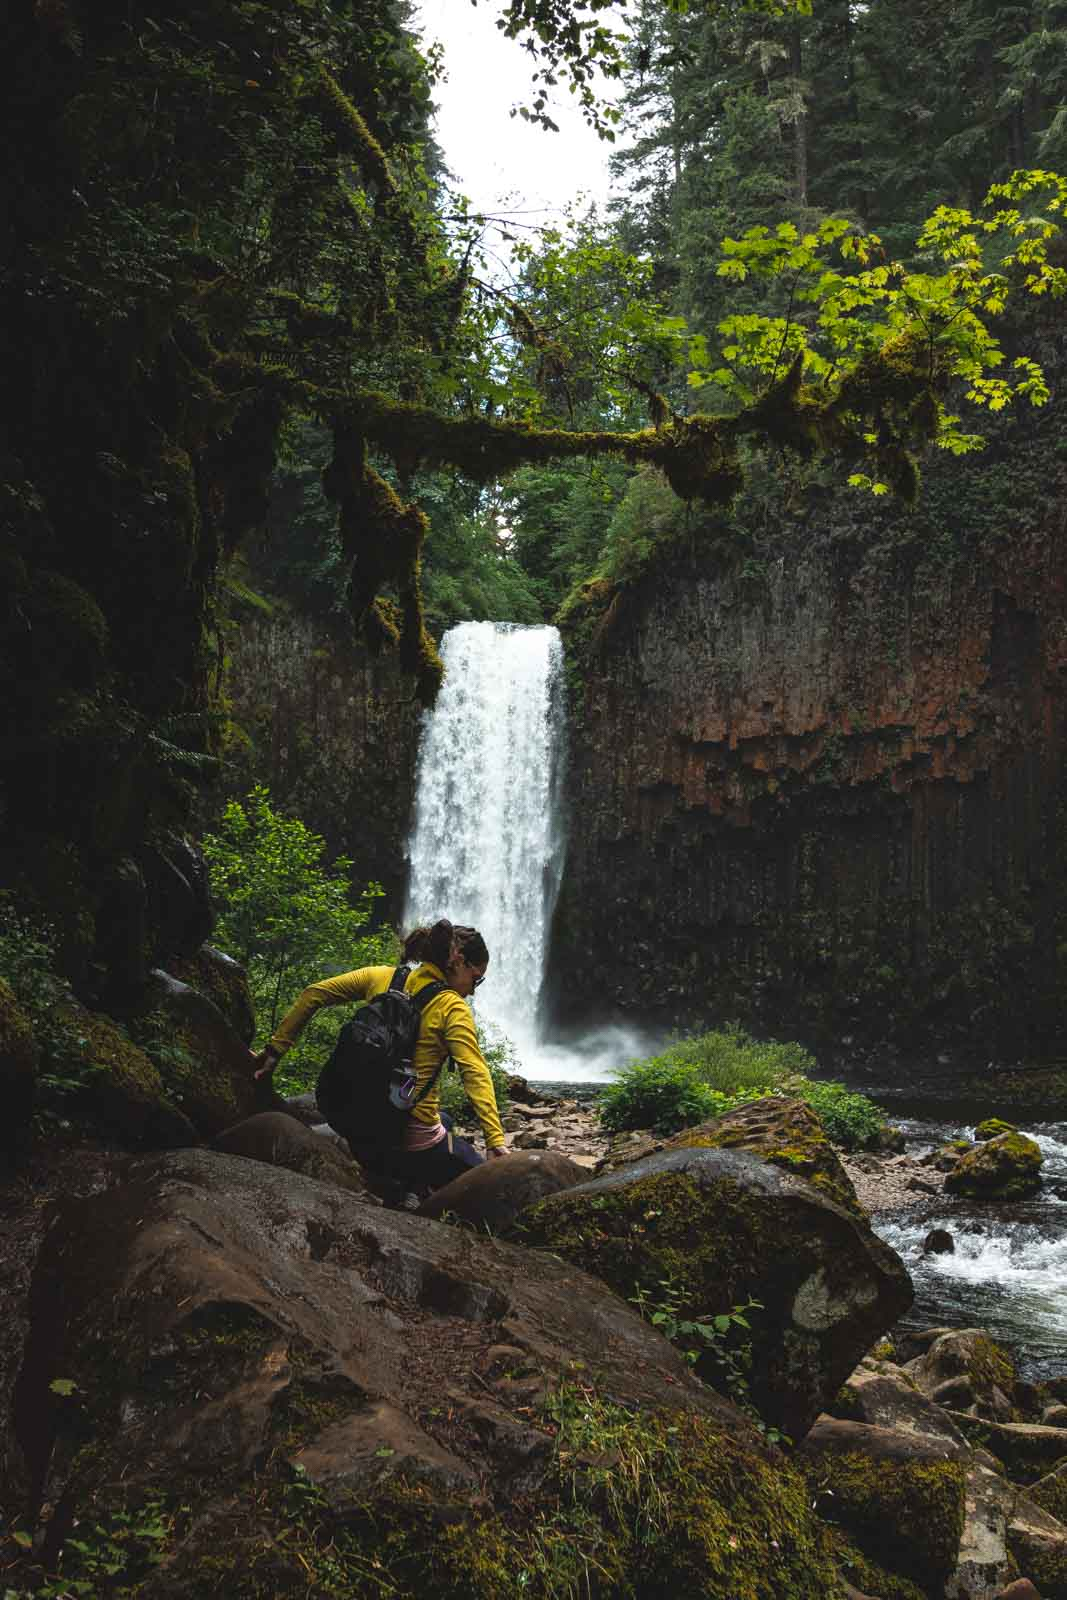 The entrance to Abiqua Falls was stunning.